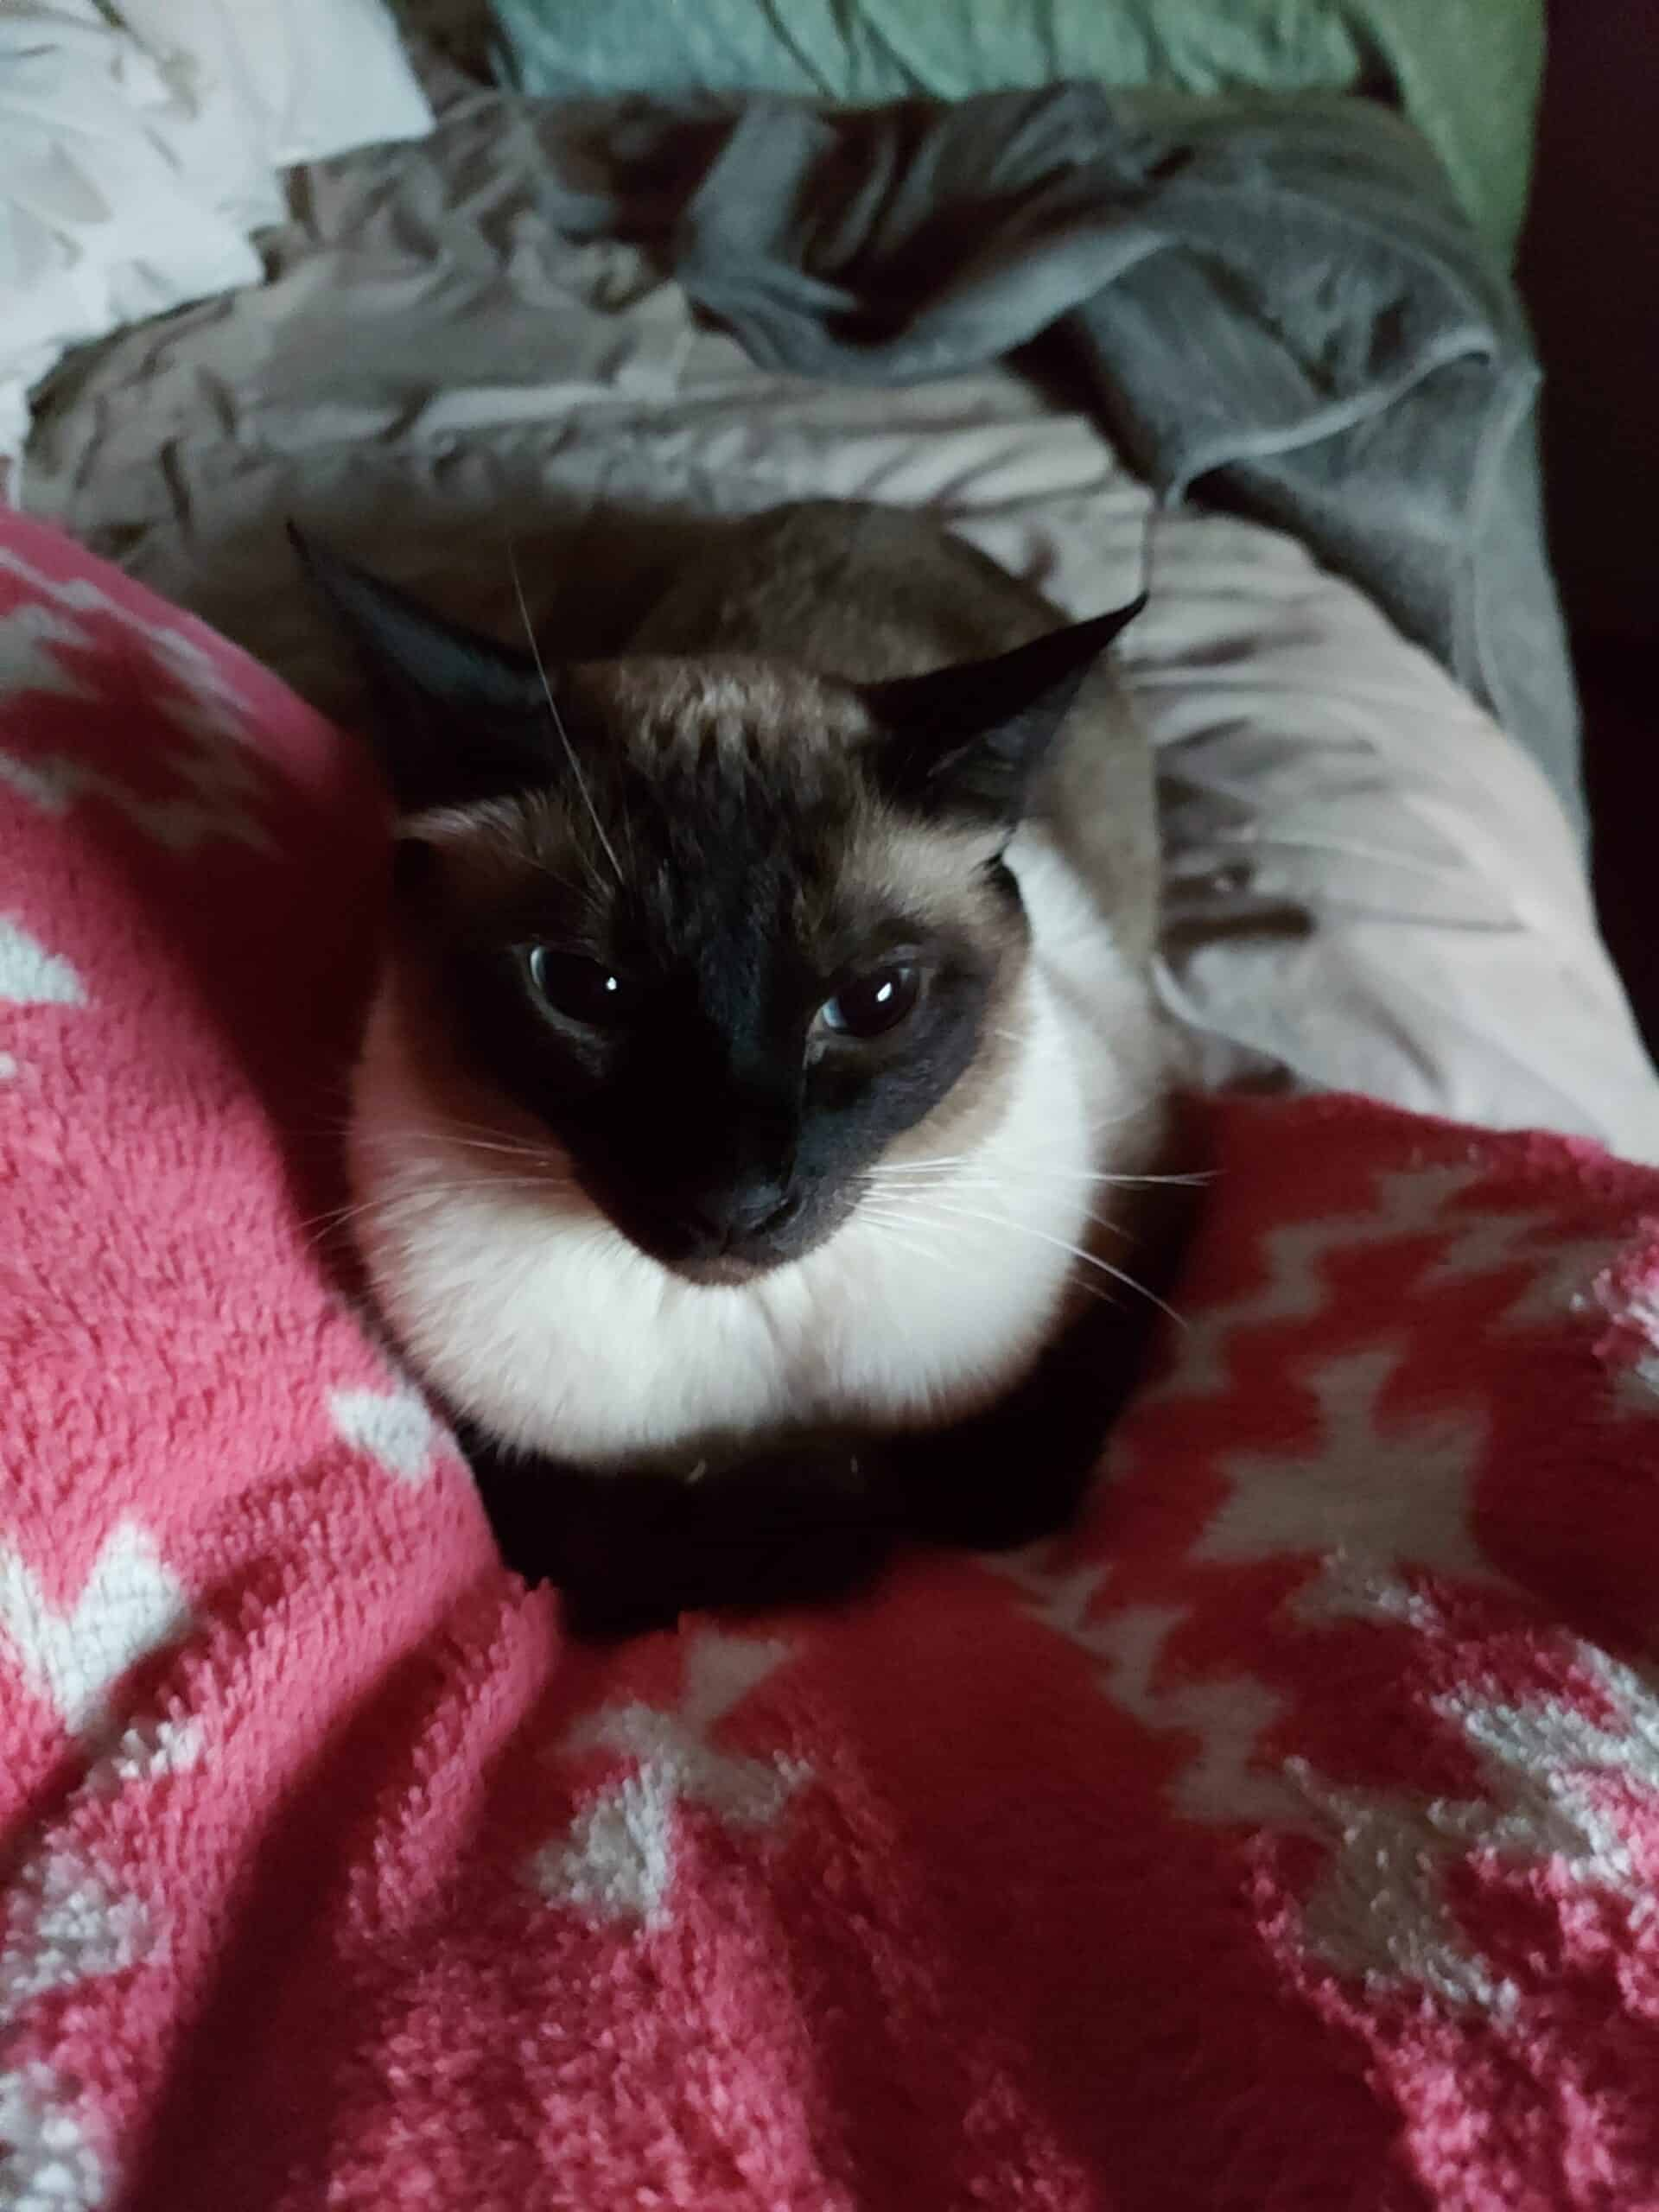 1.5 year old neutered male Siamese